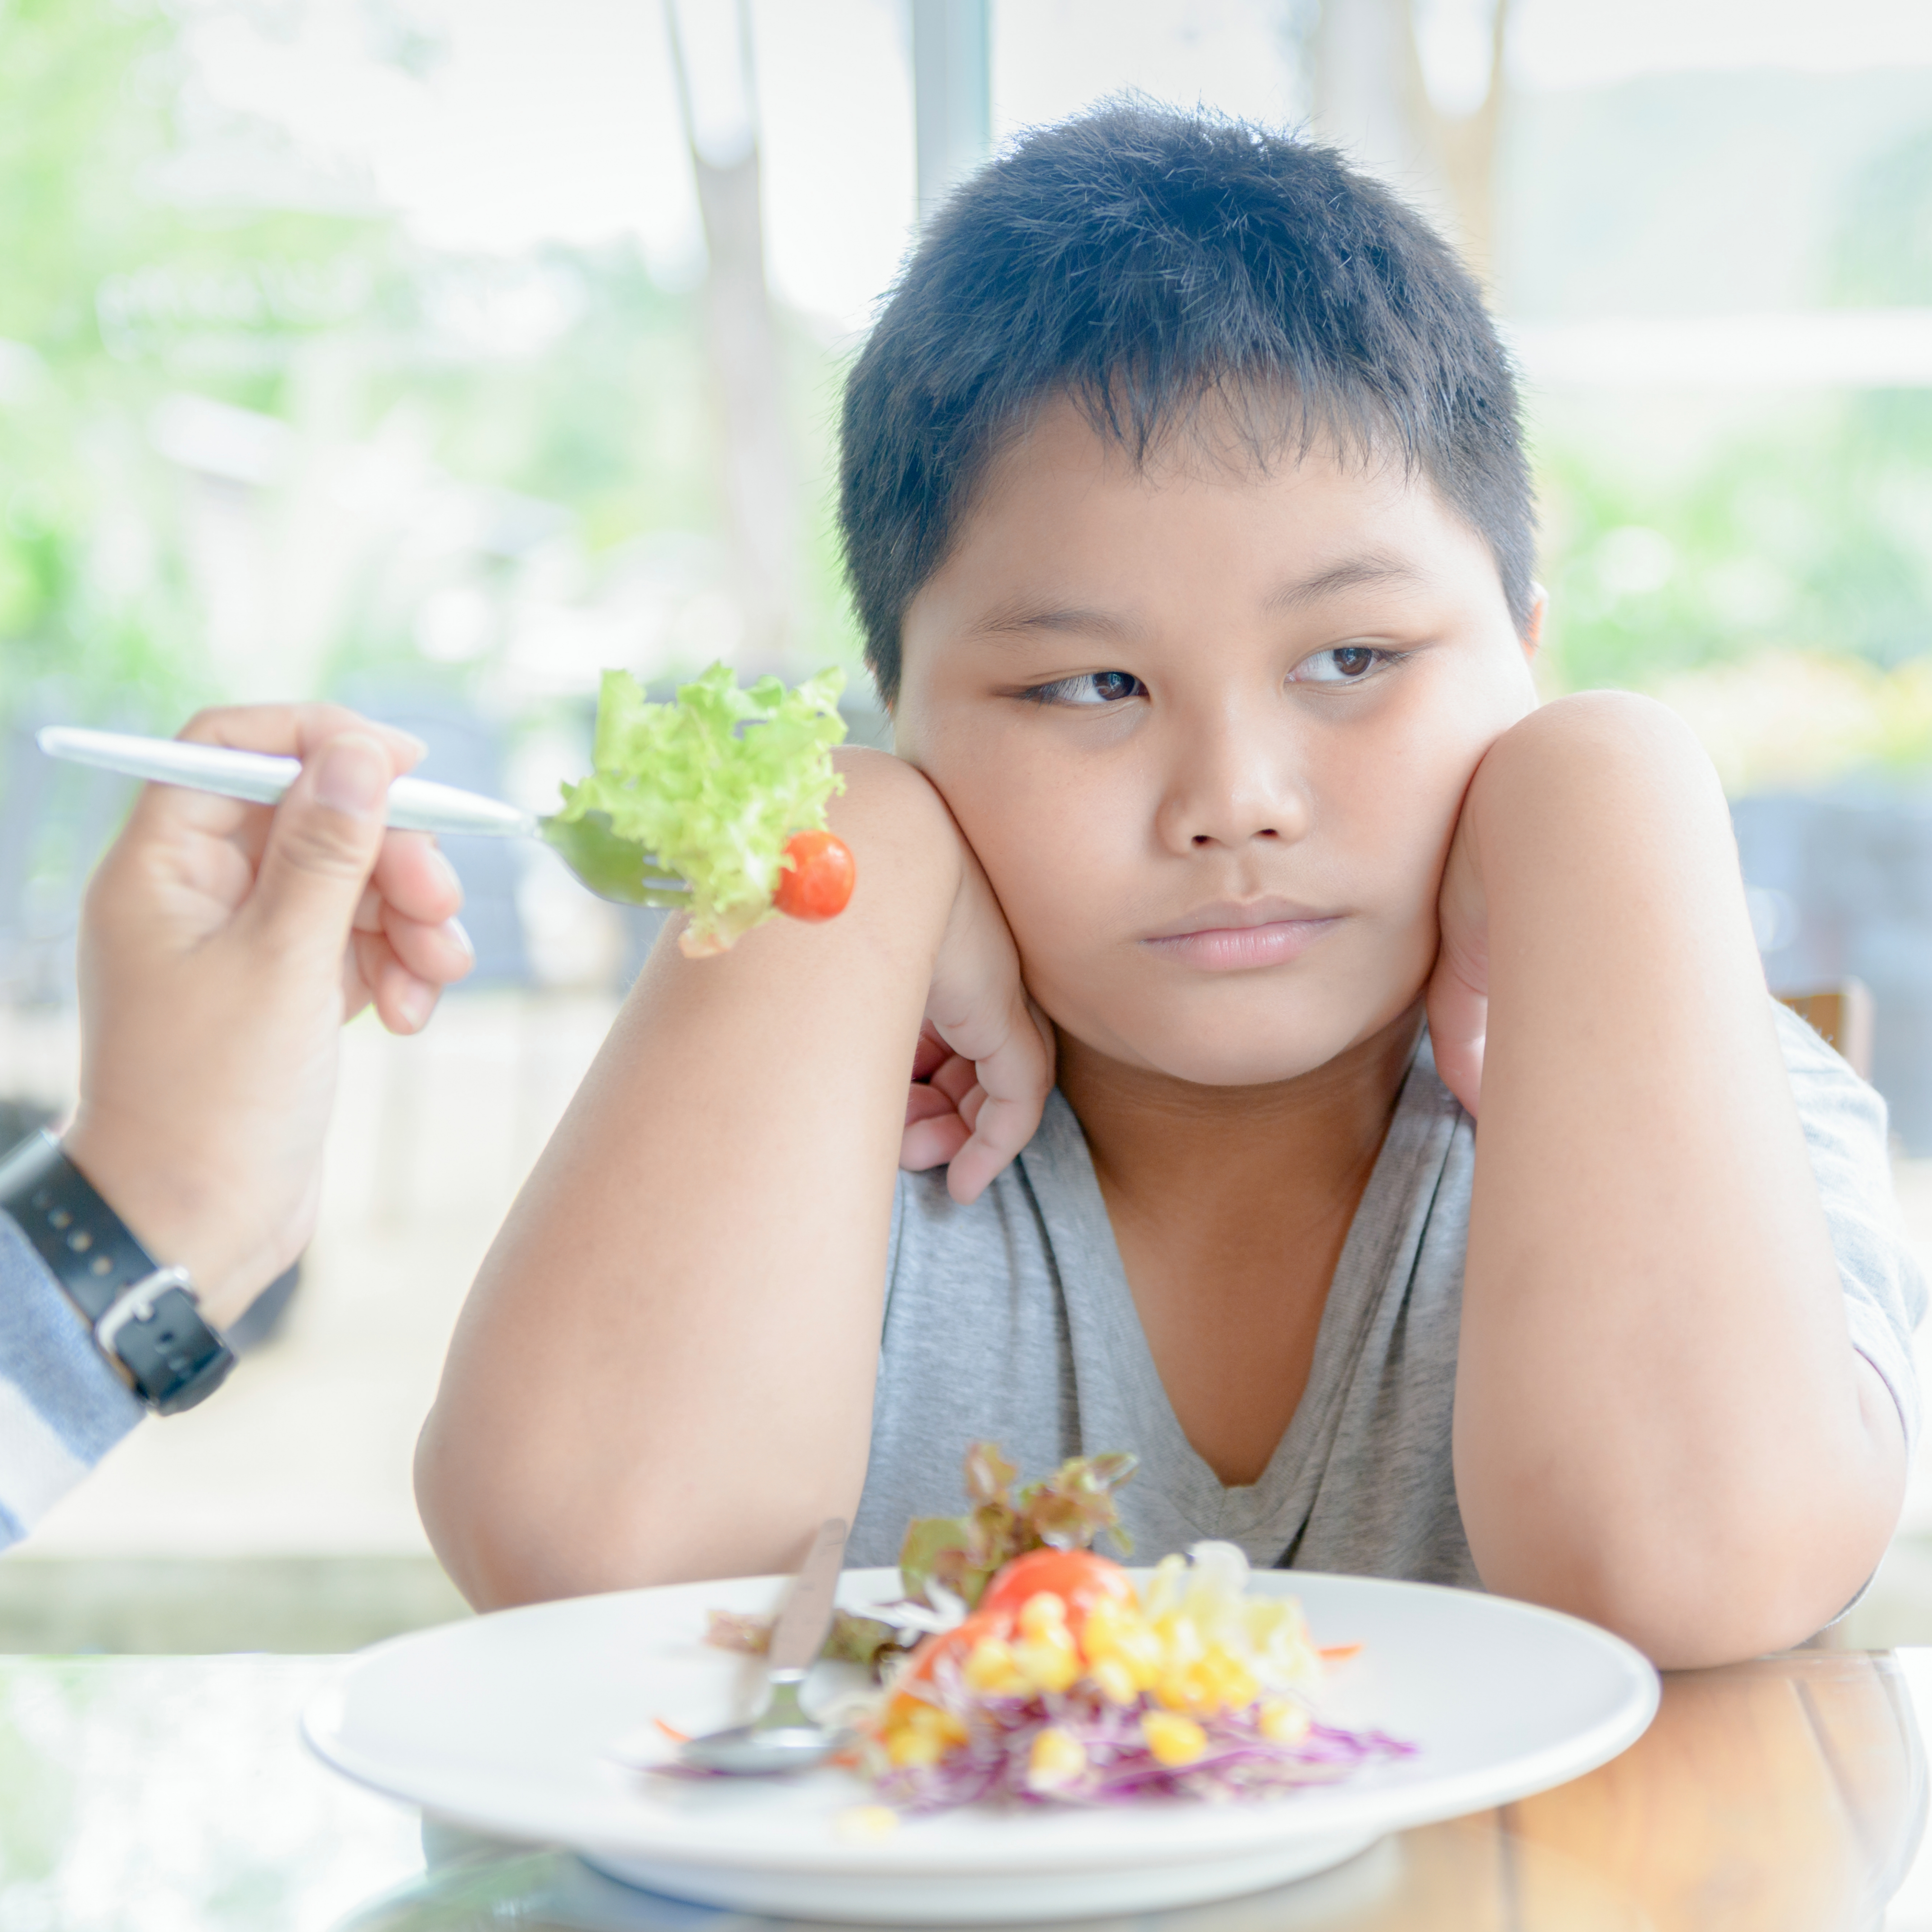 a young boy pouting at a table with someone trying to feed him some vegetables, not interesting in eating